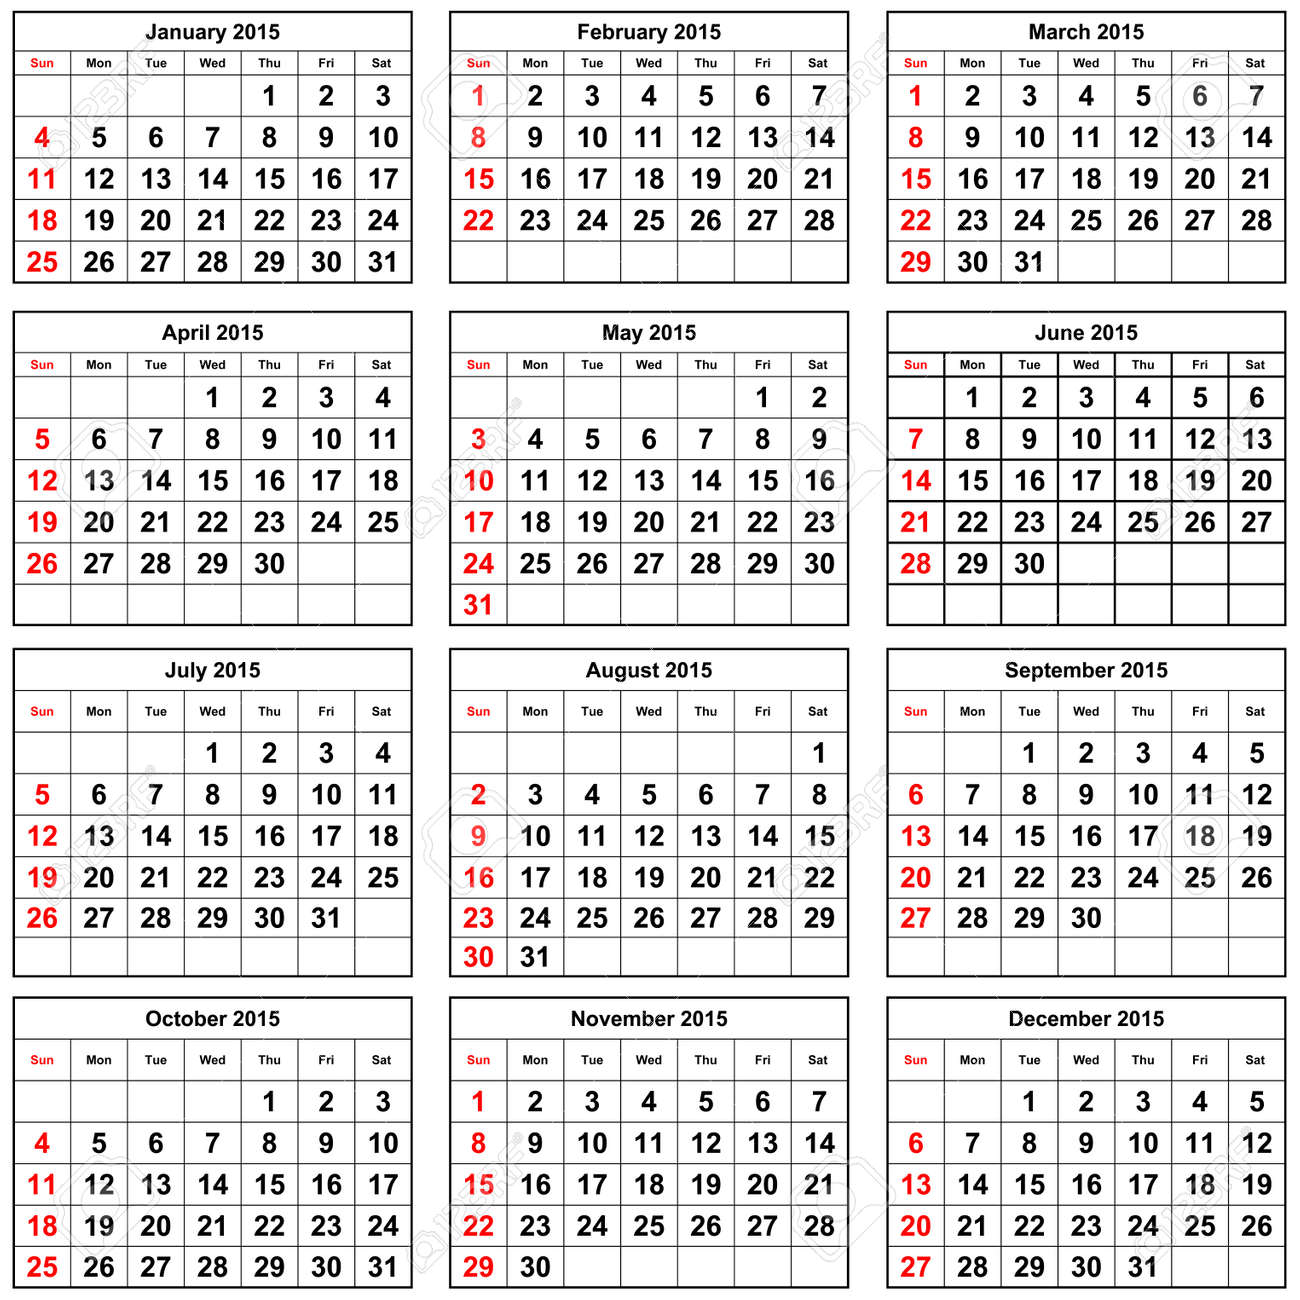 calendario anual 2015 - Gidiye.redformapolitica.co